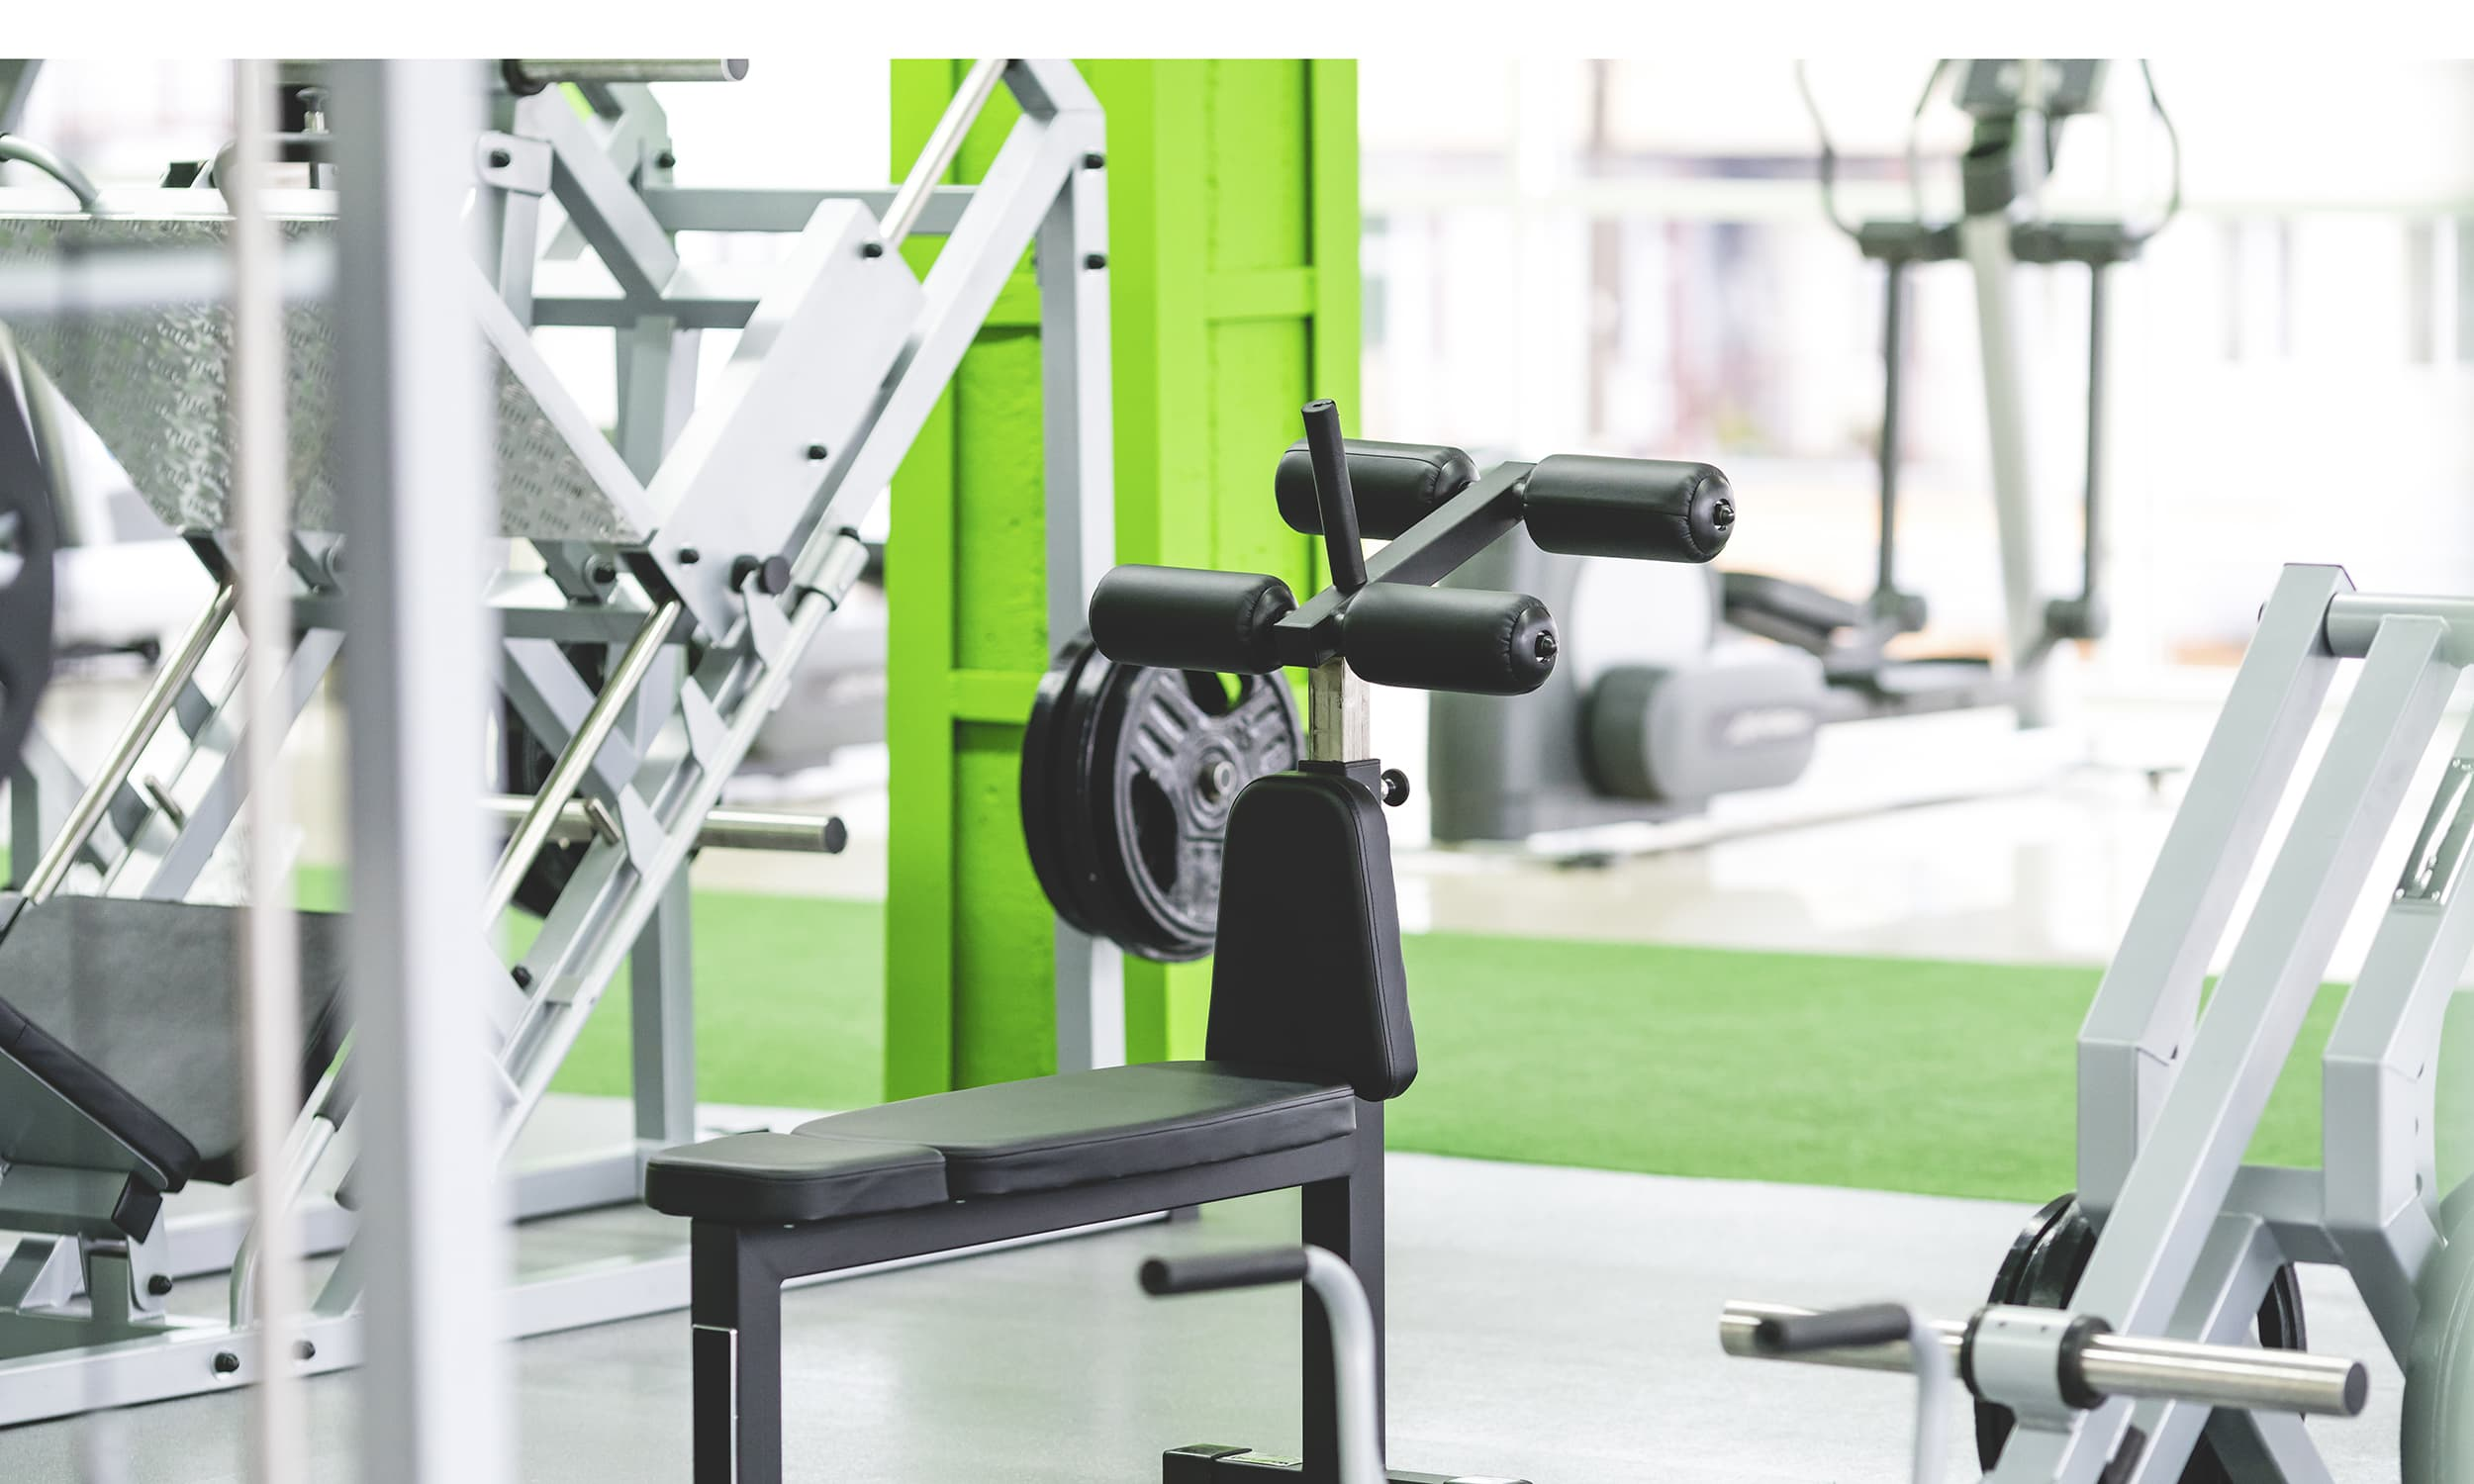 The sport equipment in the fitness center